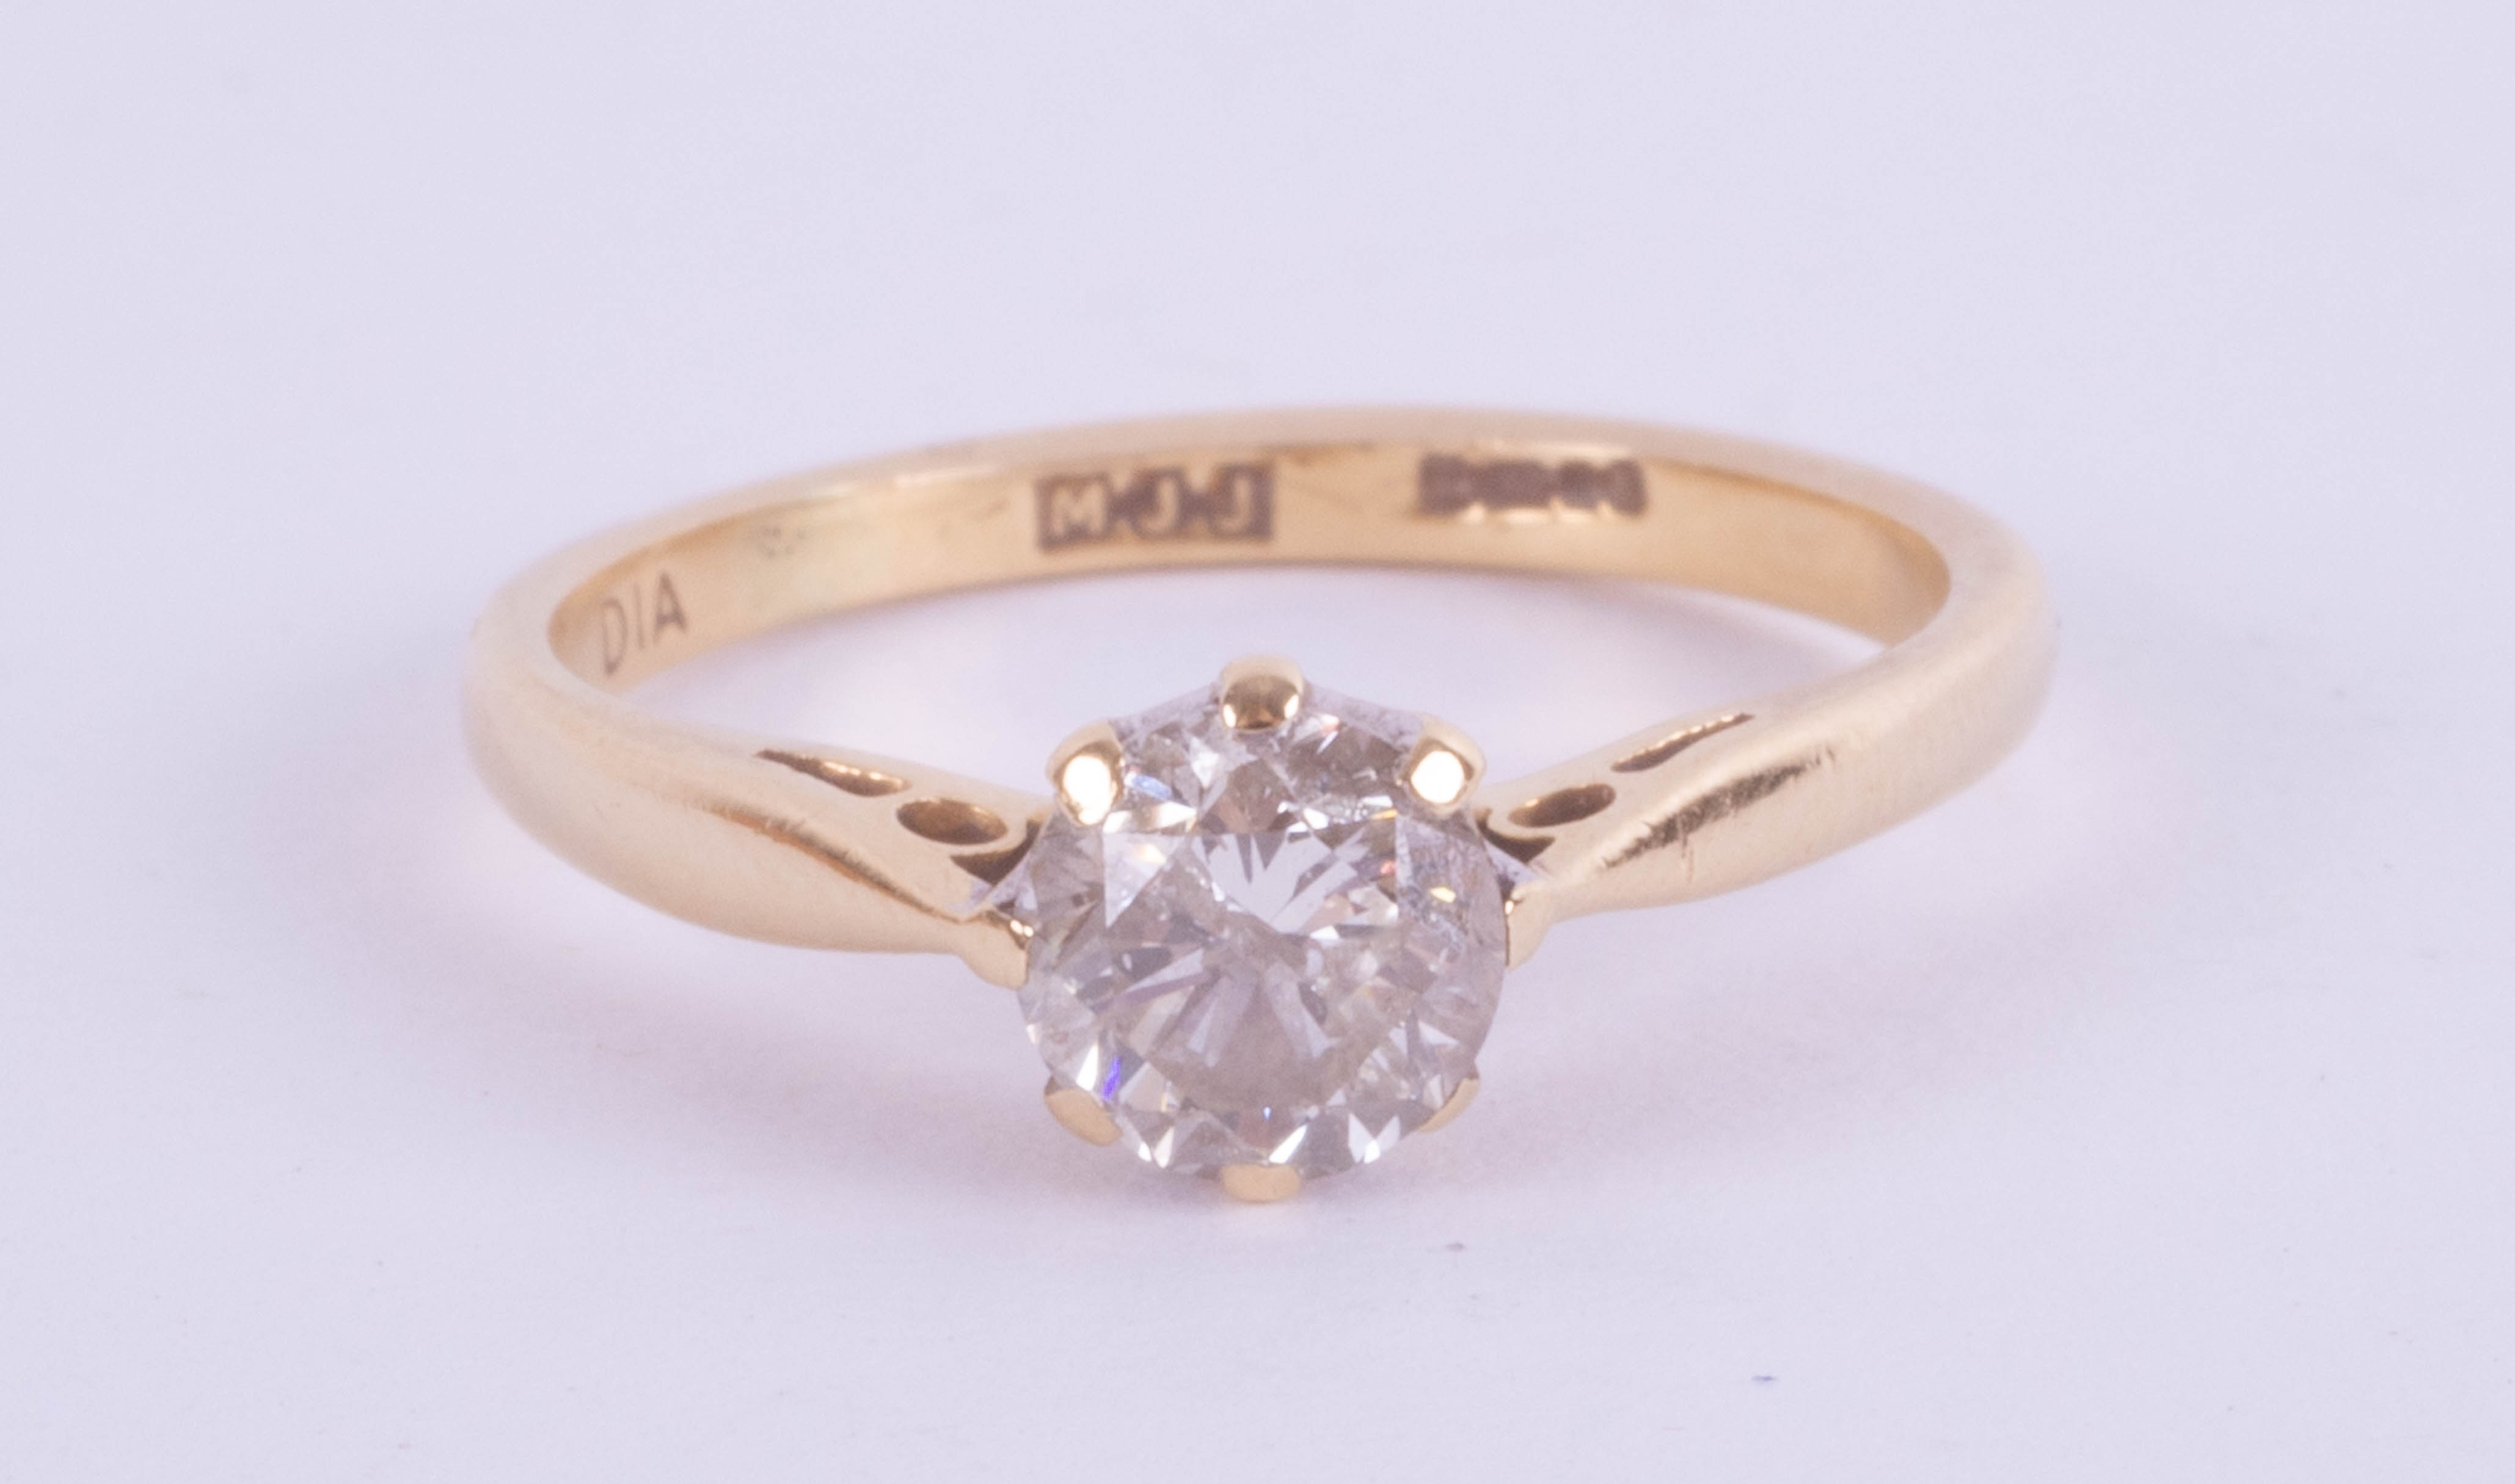 An 18ct yellow gold diamond solitaire ring approx. 0.50ct, ring size J.